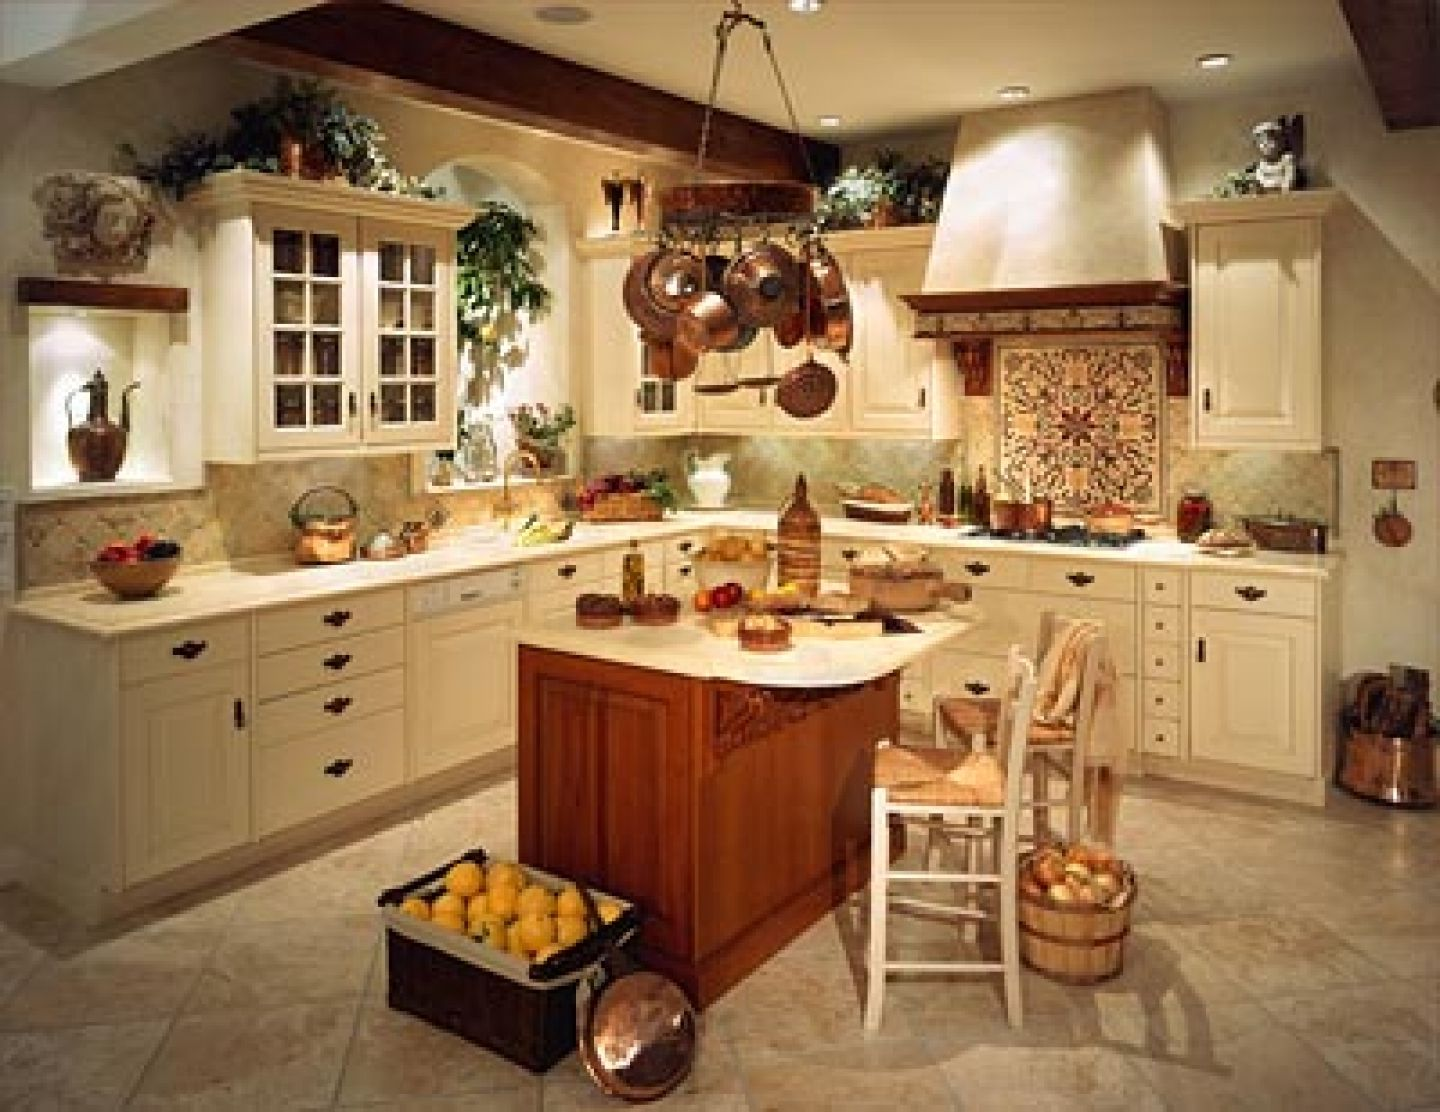 7 Recommended Kitchen Decorating Themes for Perfecting Your Kitchen ...